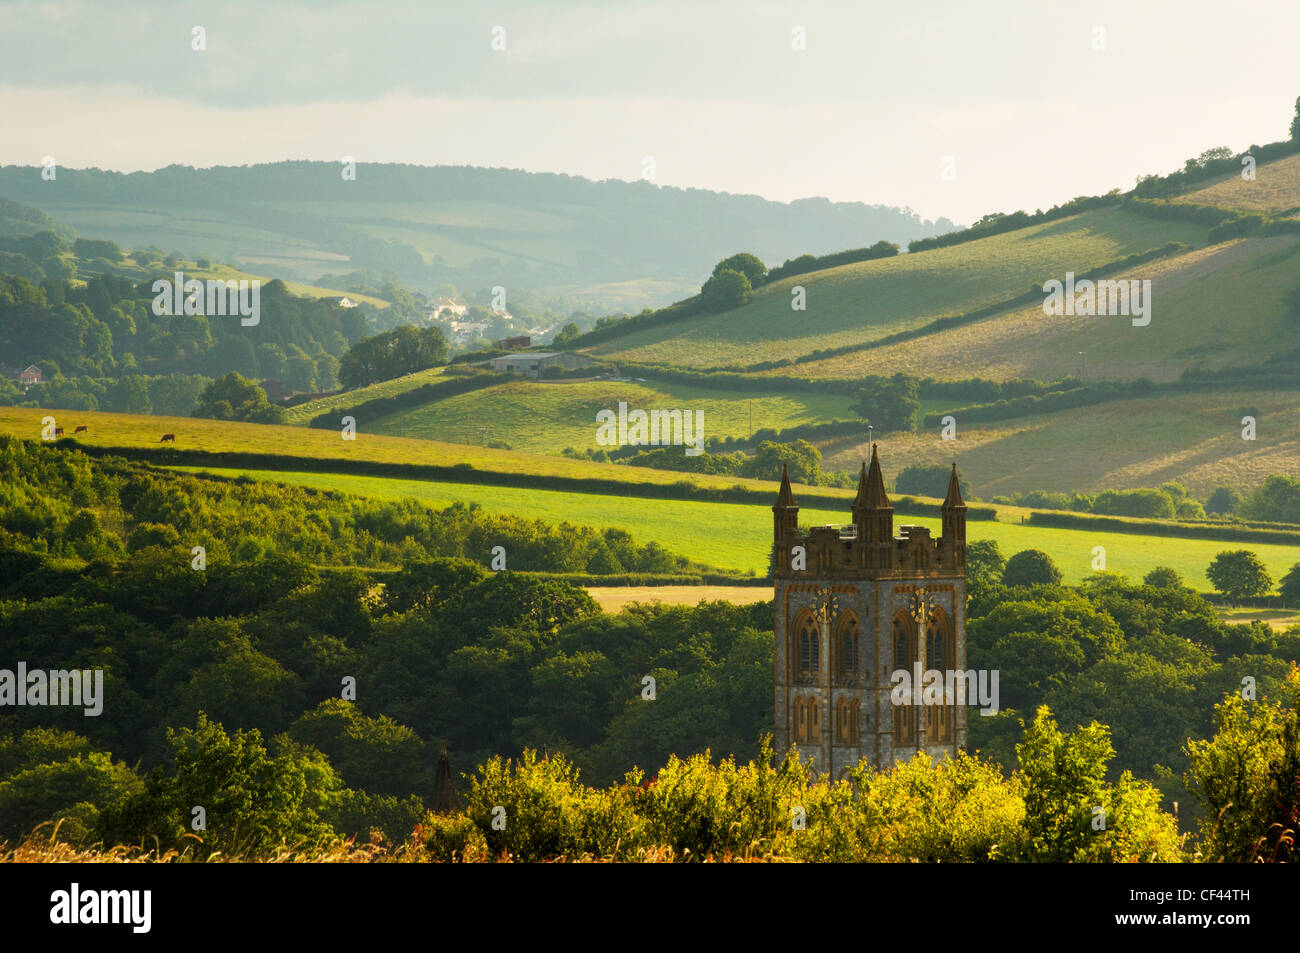 The tower of Buckfast Abbey, home to a Roman Catholic community of Benedictine monks, in a green Devonshire valley - Stock Image